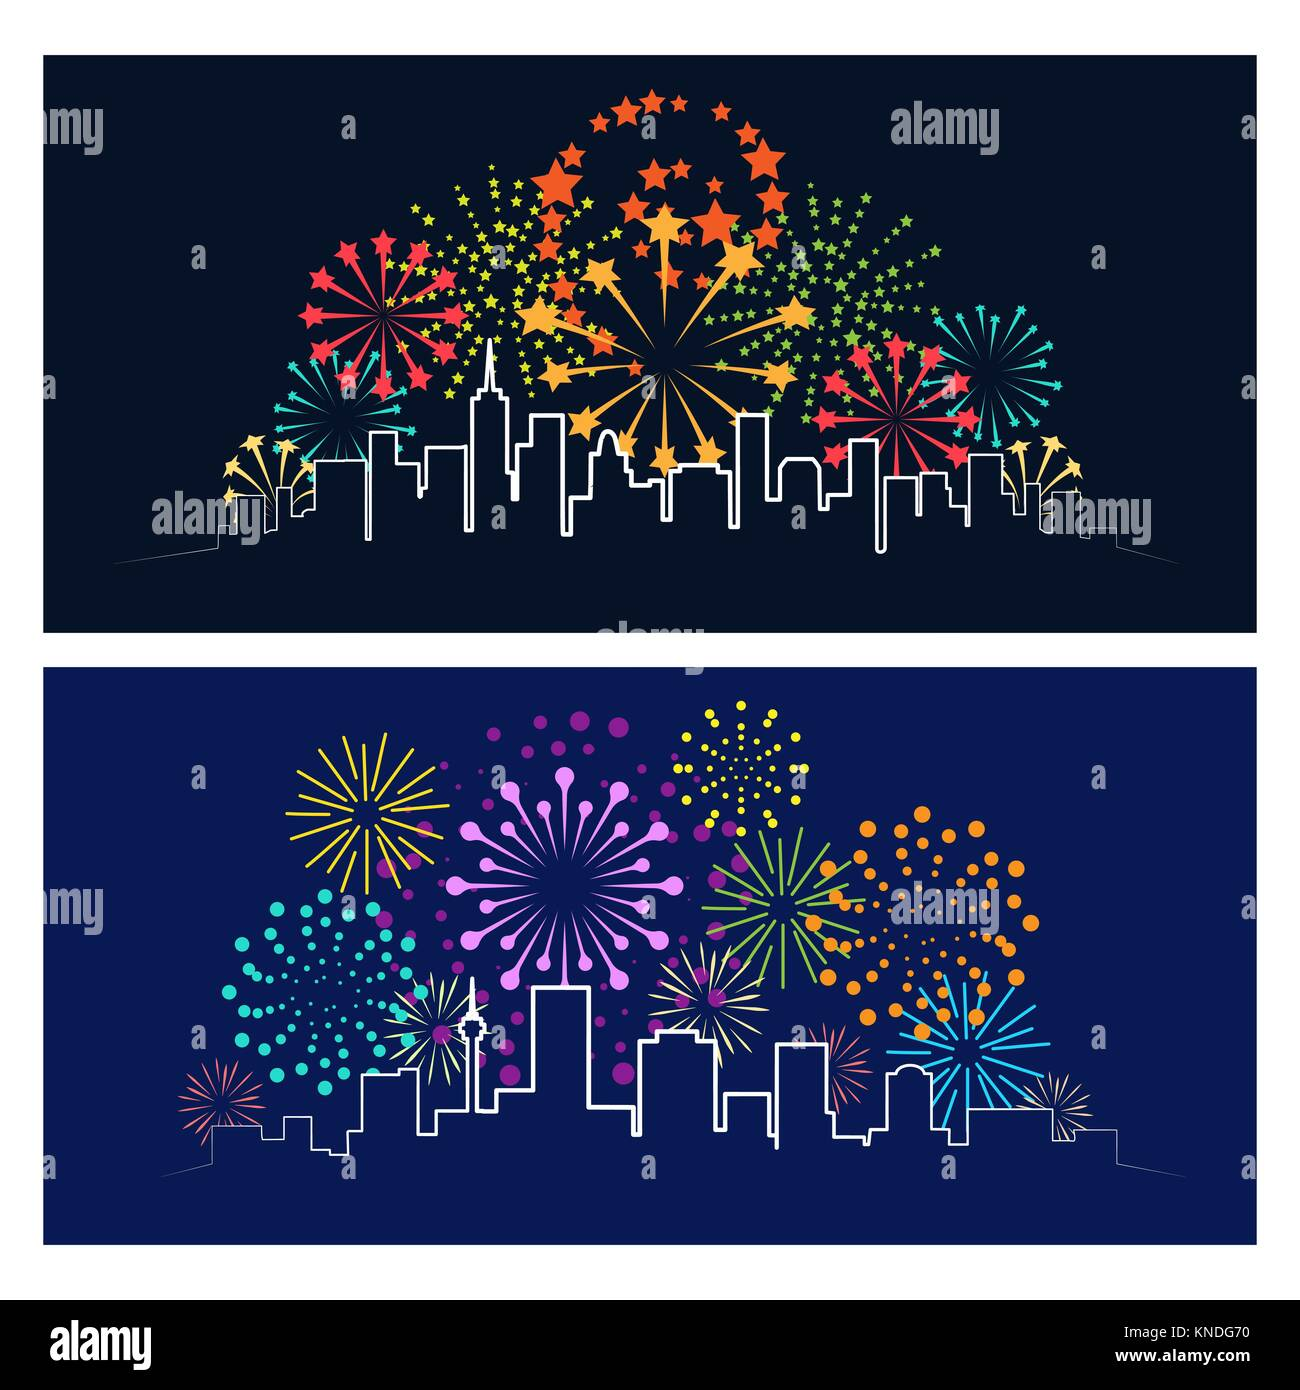 Fireworks city skyline. Celebrating firework over night town panorama, urban festive party landscape concept vector - Stock Image